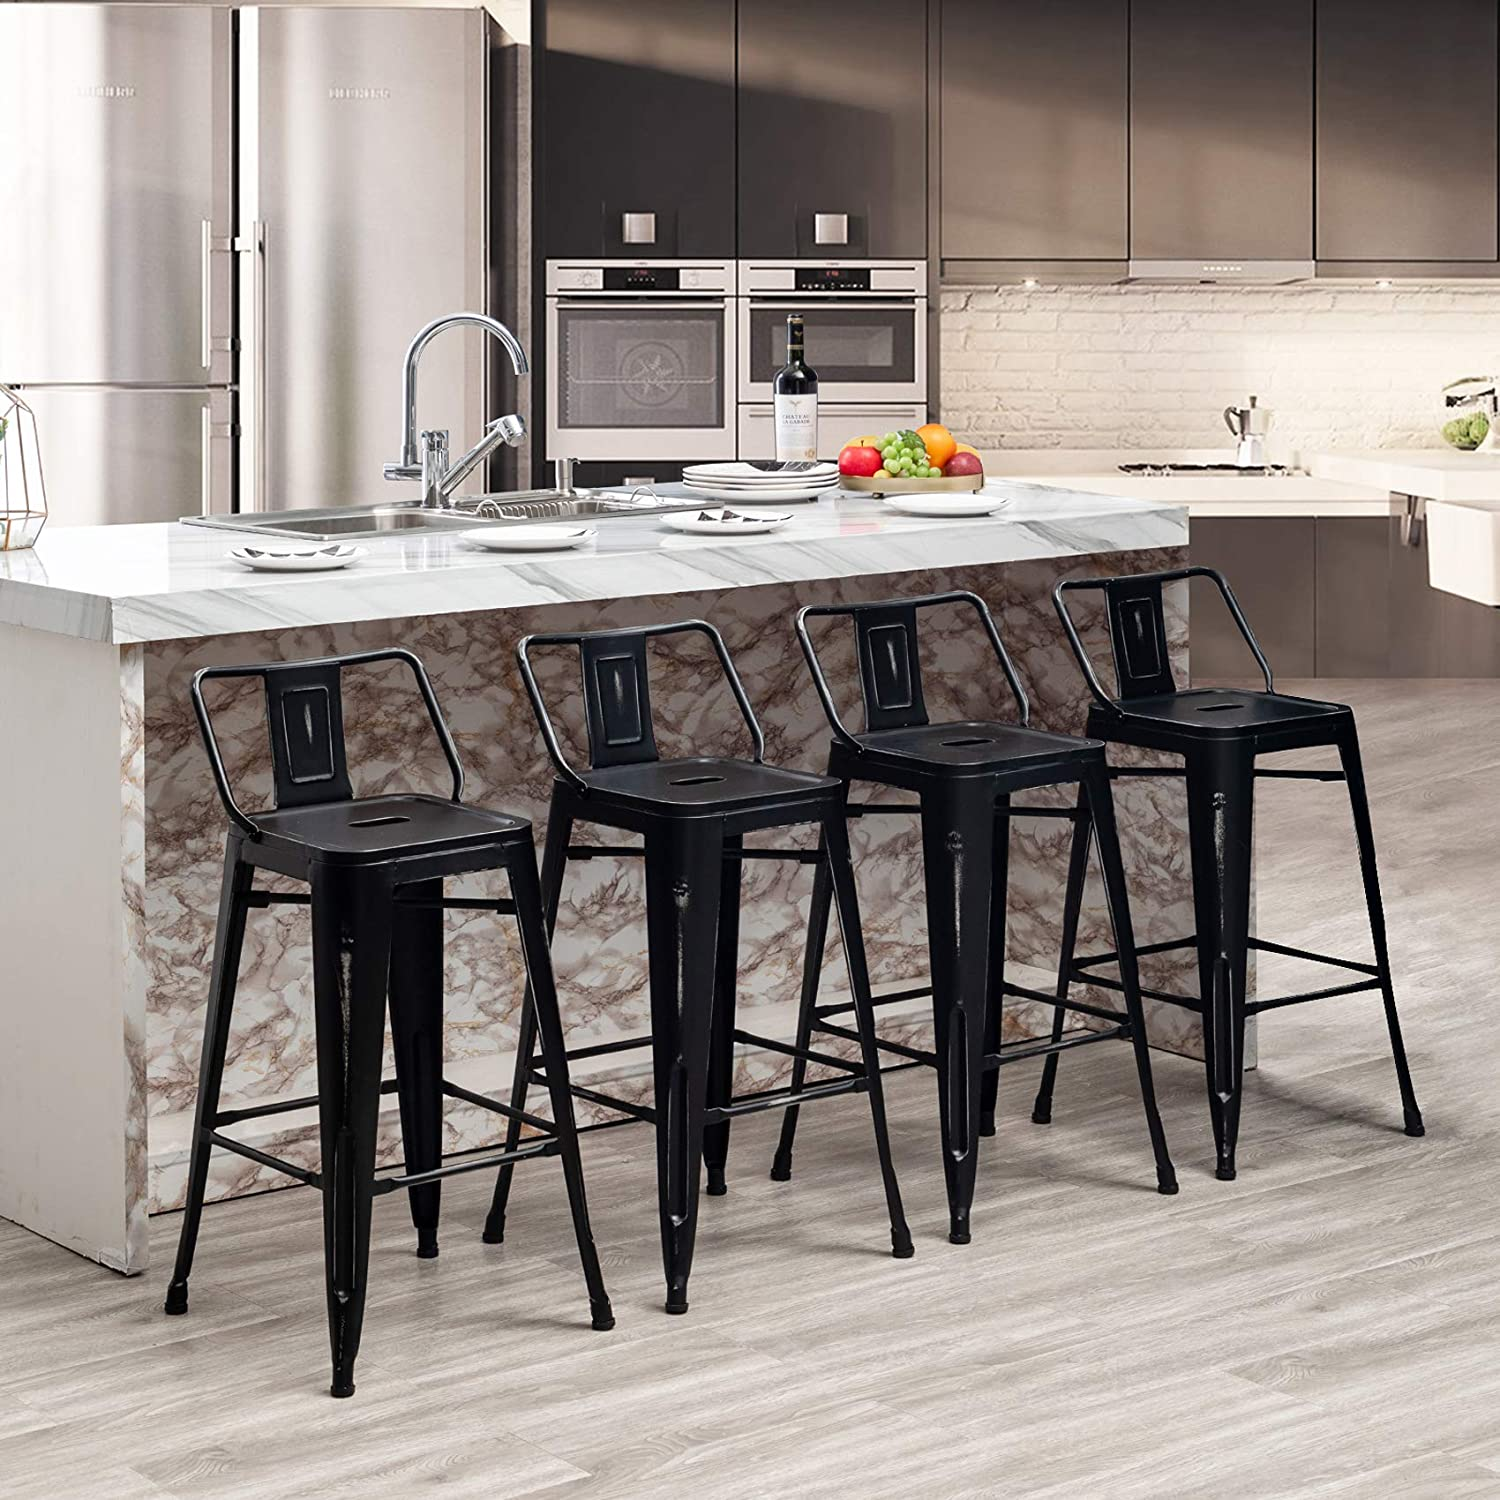 Awonde Metal Barstools with Backs Industrial Distressed Counter Height Bar Stools Set of 4 (26